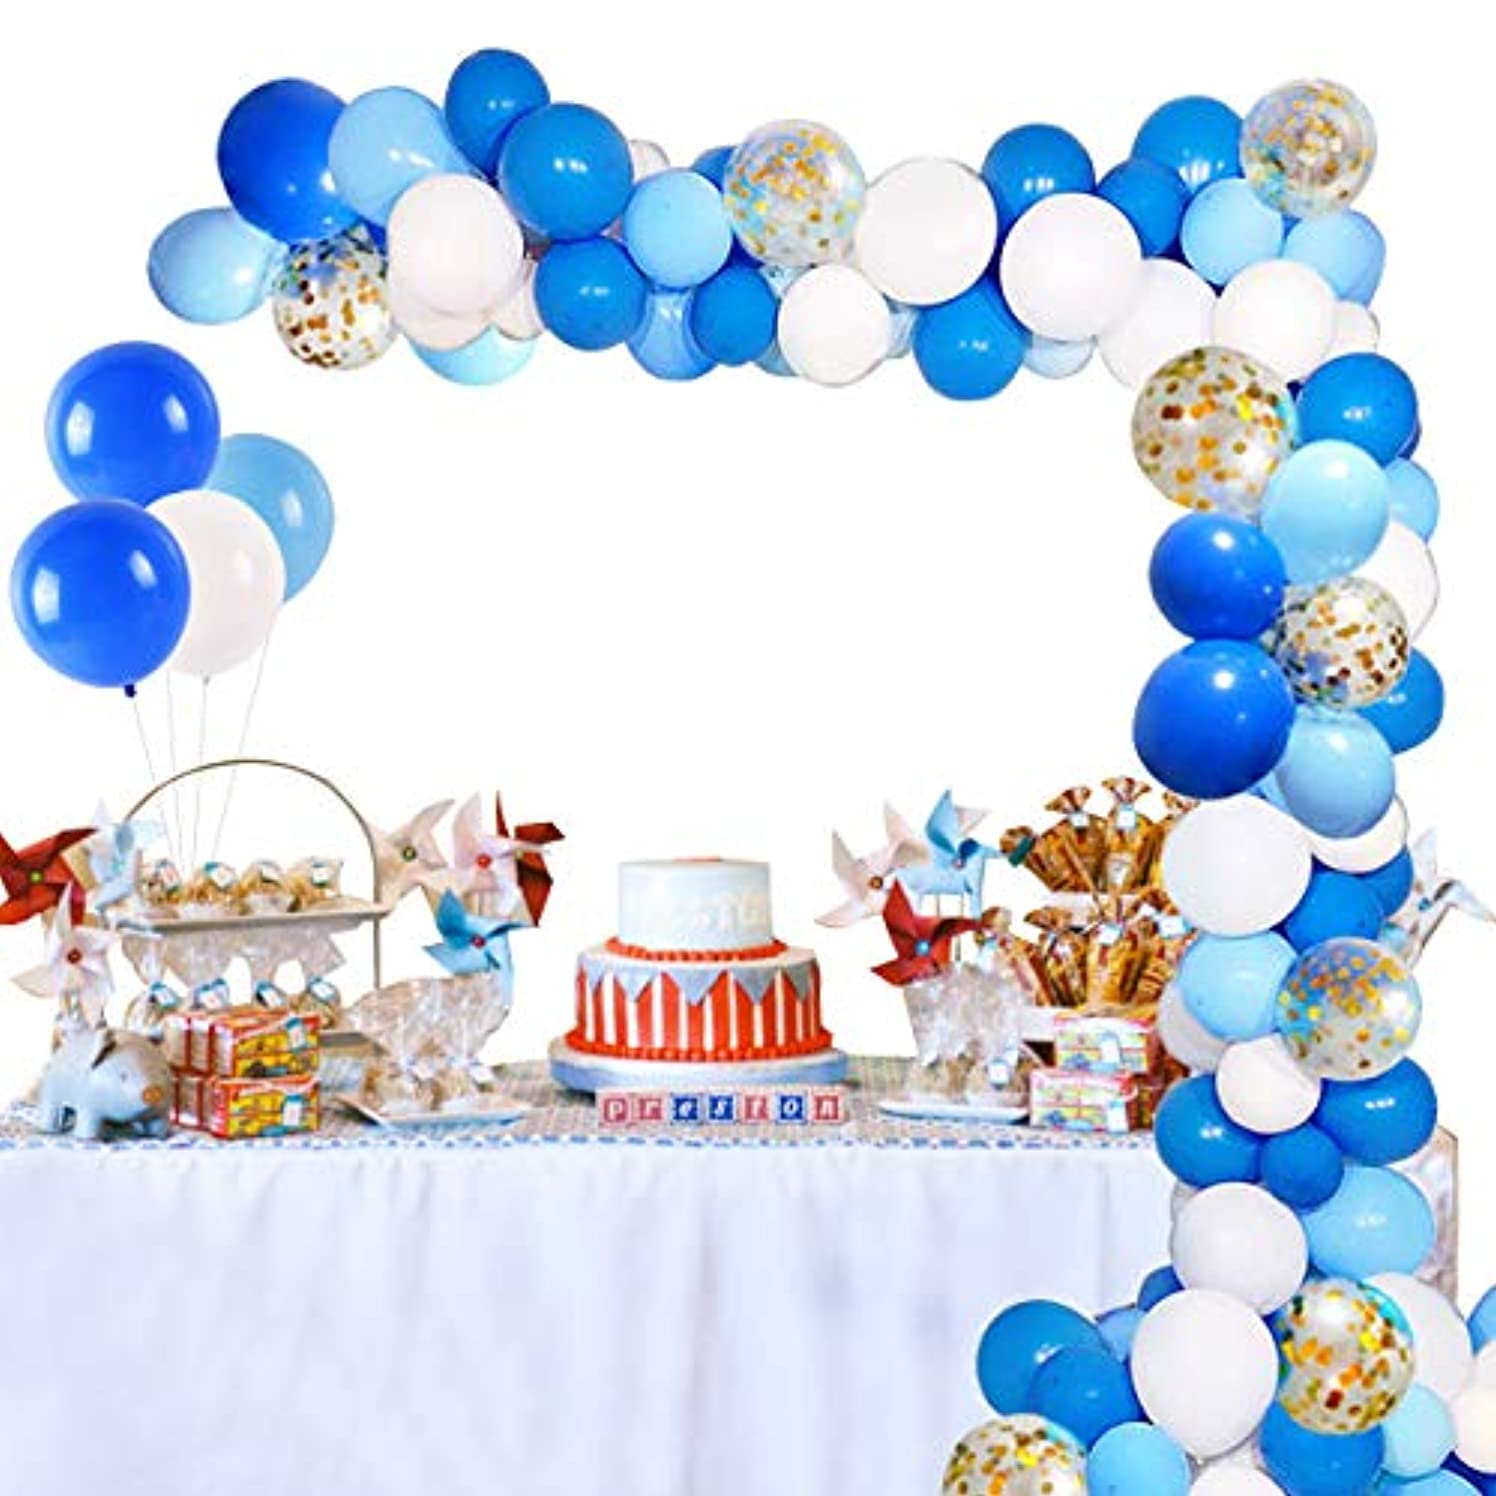 Birthday Party Balloon Garland Kit – 90 Latex Balloons Blue, White, Sky Blue, Confetti Balloon, Balloons Garland Strip for Balloon Arch Kit, Boy Party, Baby Boy Shower, Wedding Graduation Party